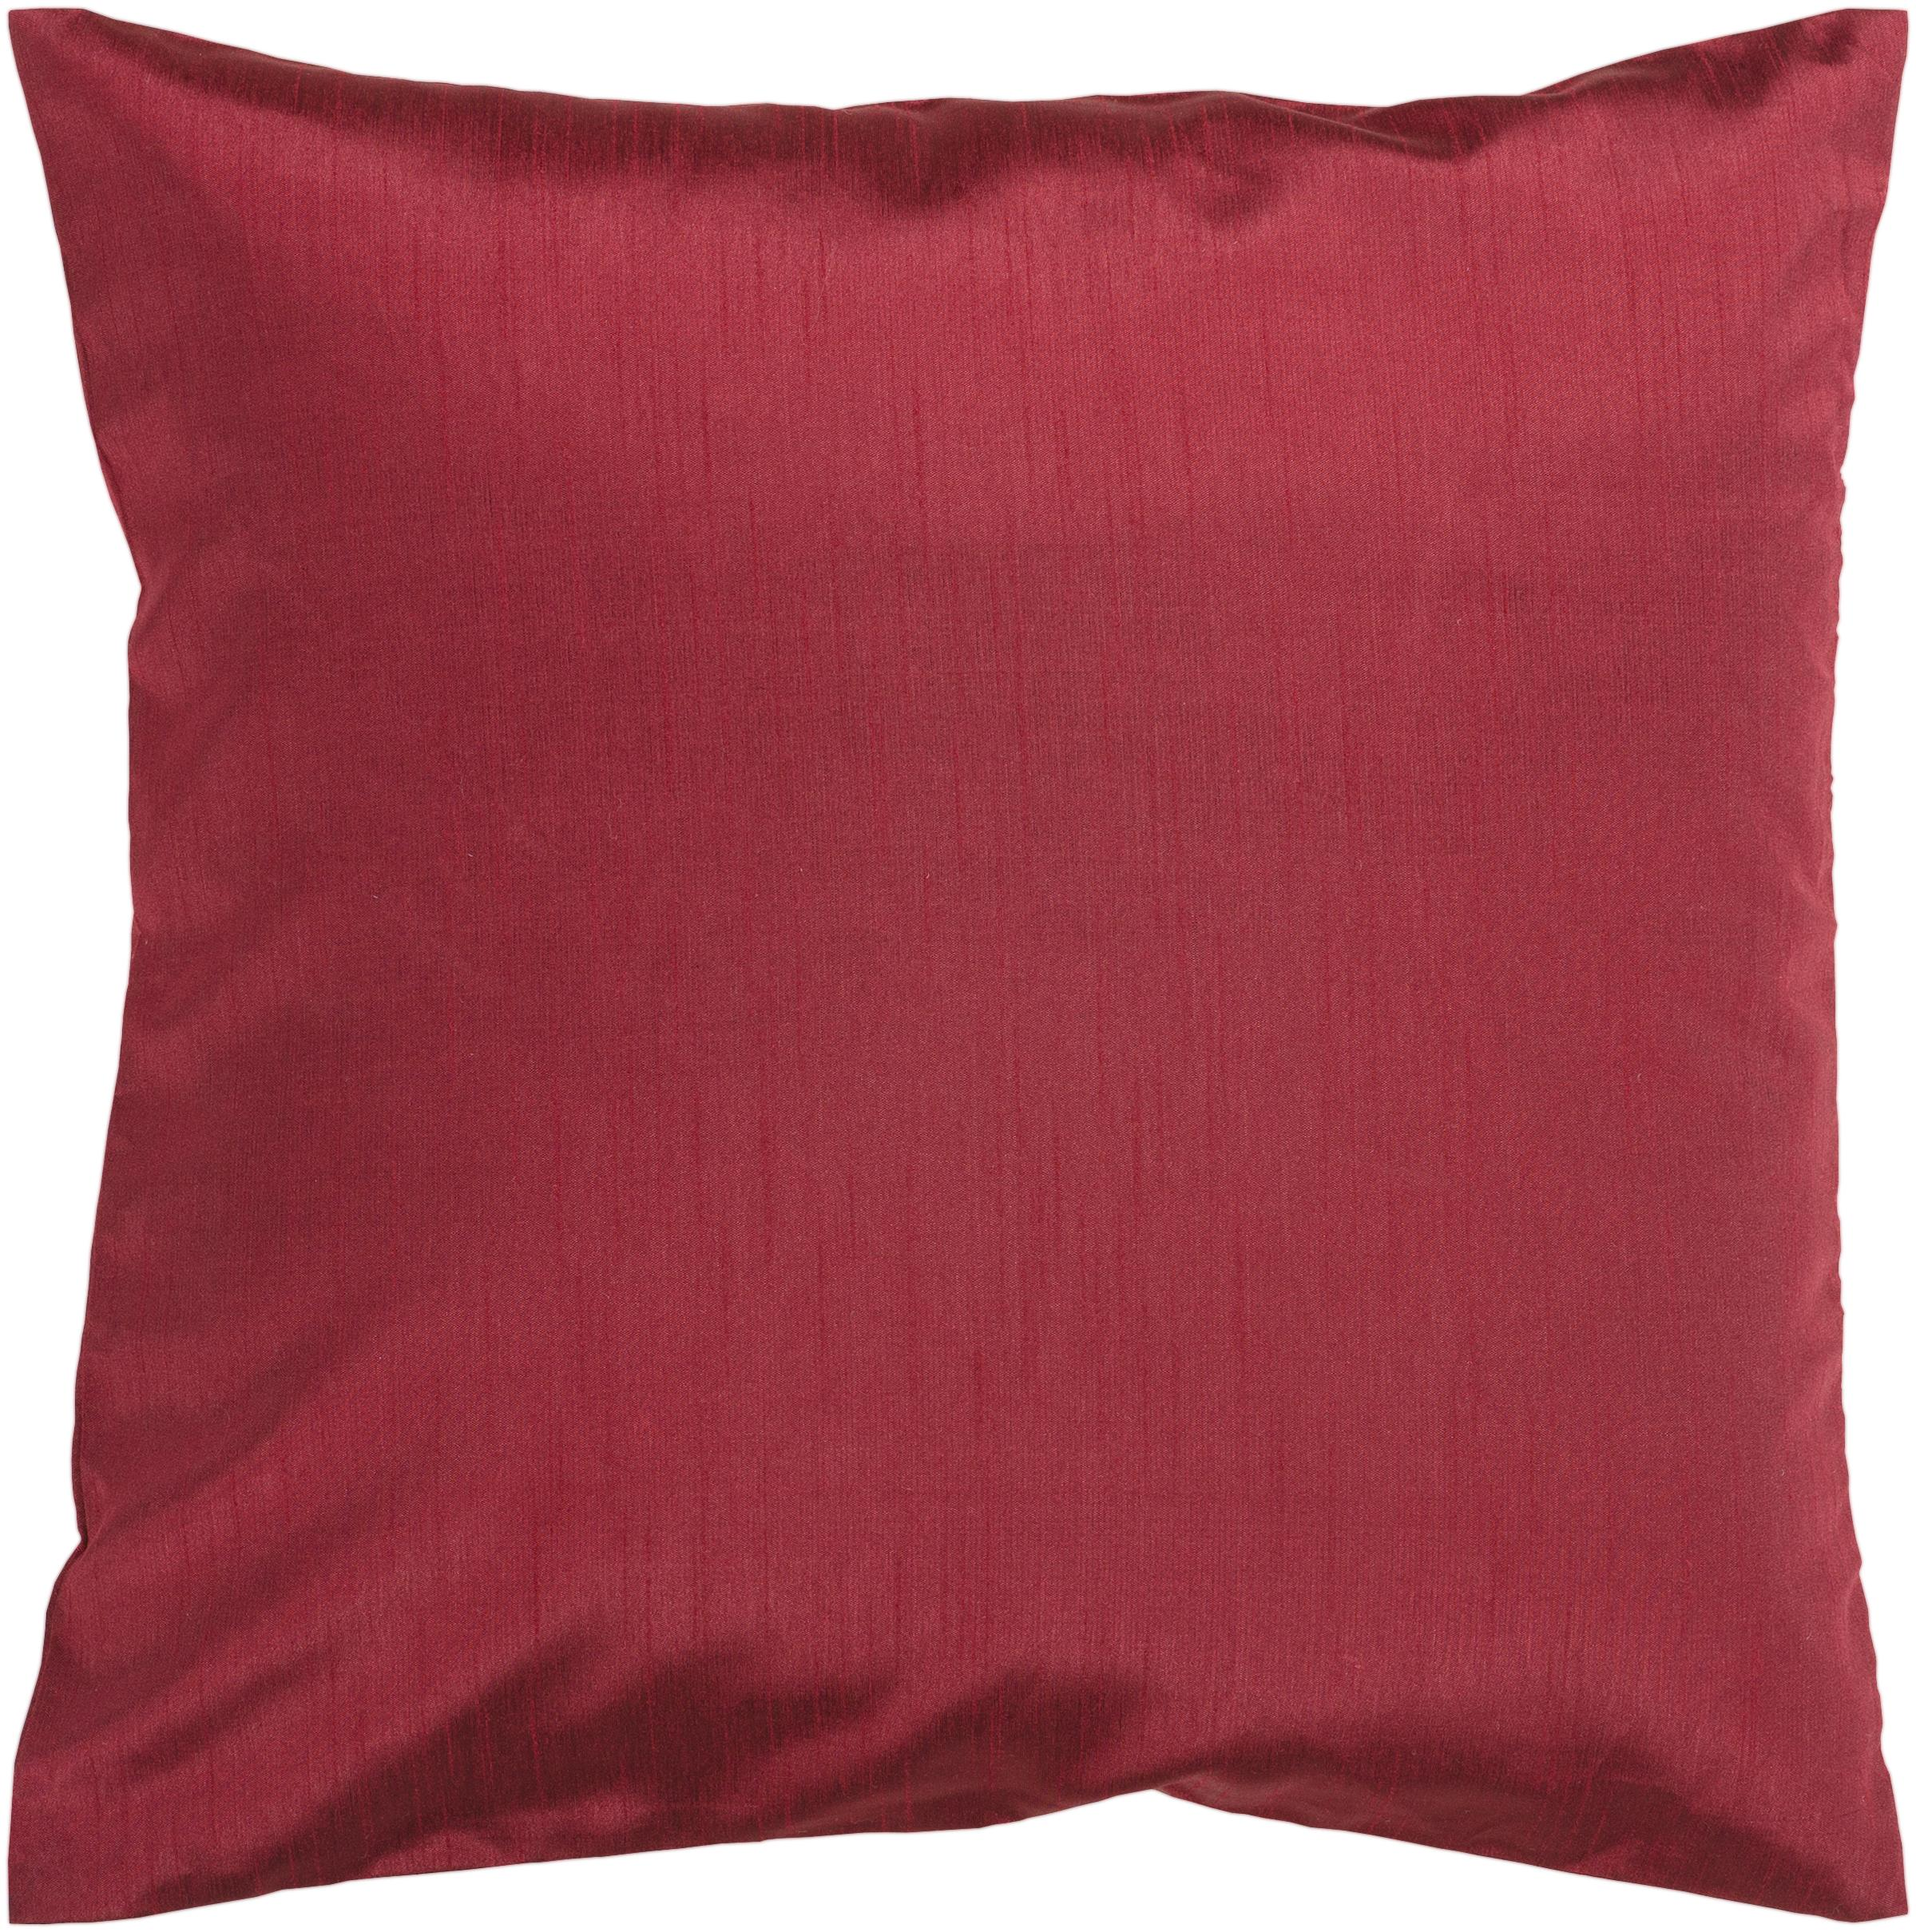 "Surya Pillows 22"" x 22"" Pillow - Item Number: HH042-2222P"